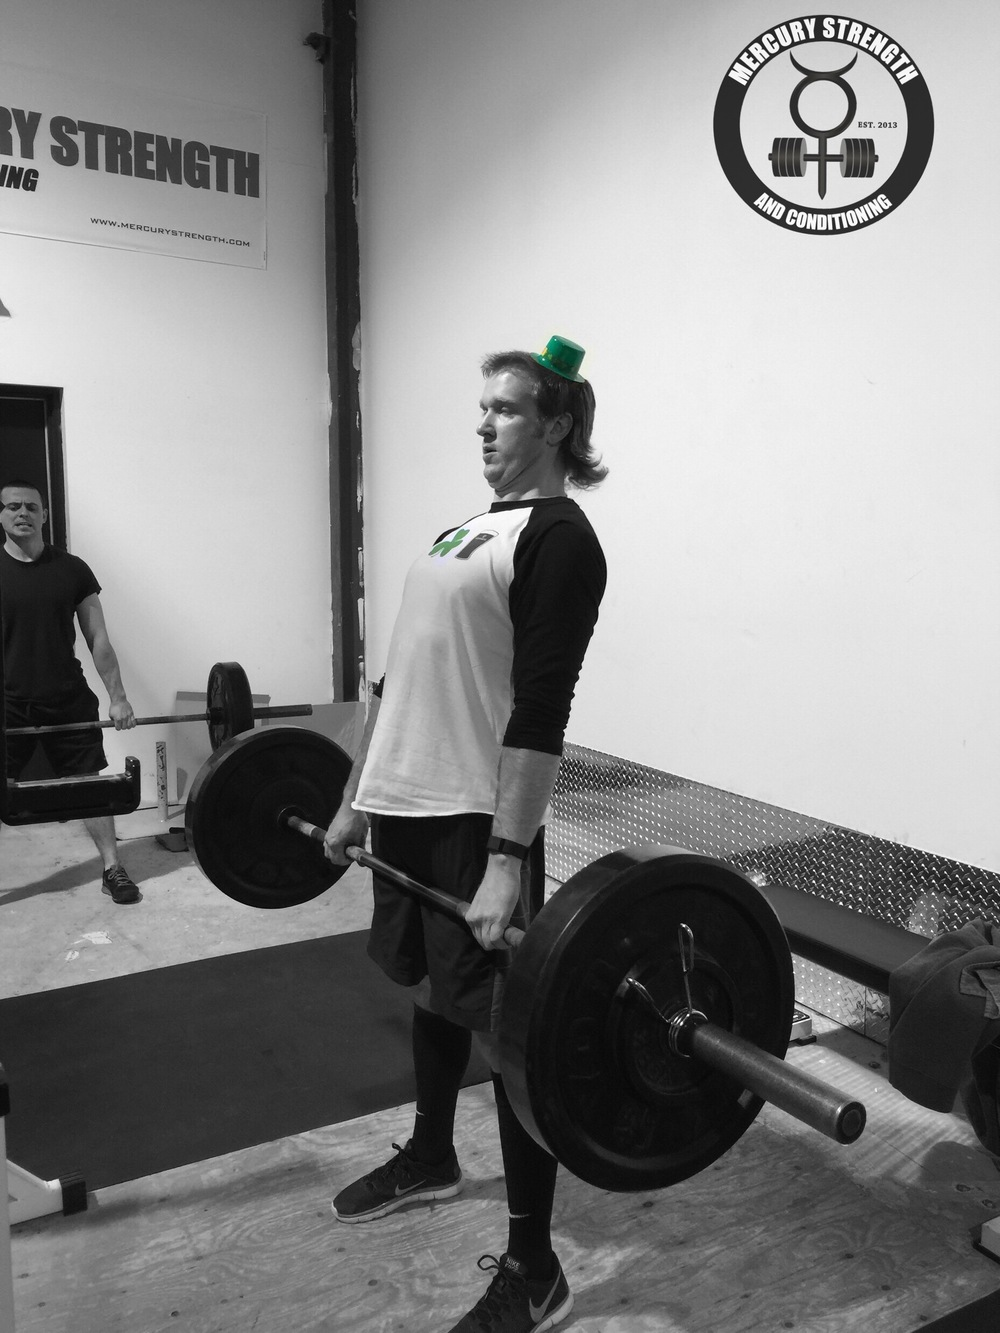 Lucas sporting the St. Patty's Day garb while cranking out one of his 20 deadlifts.